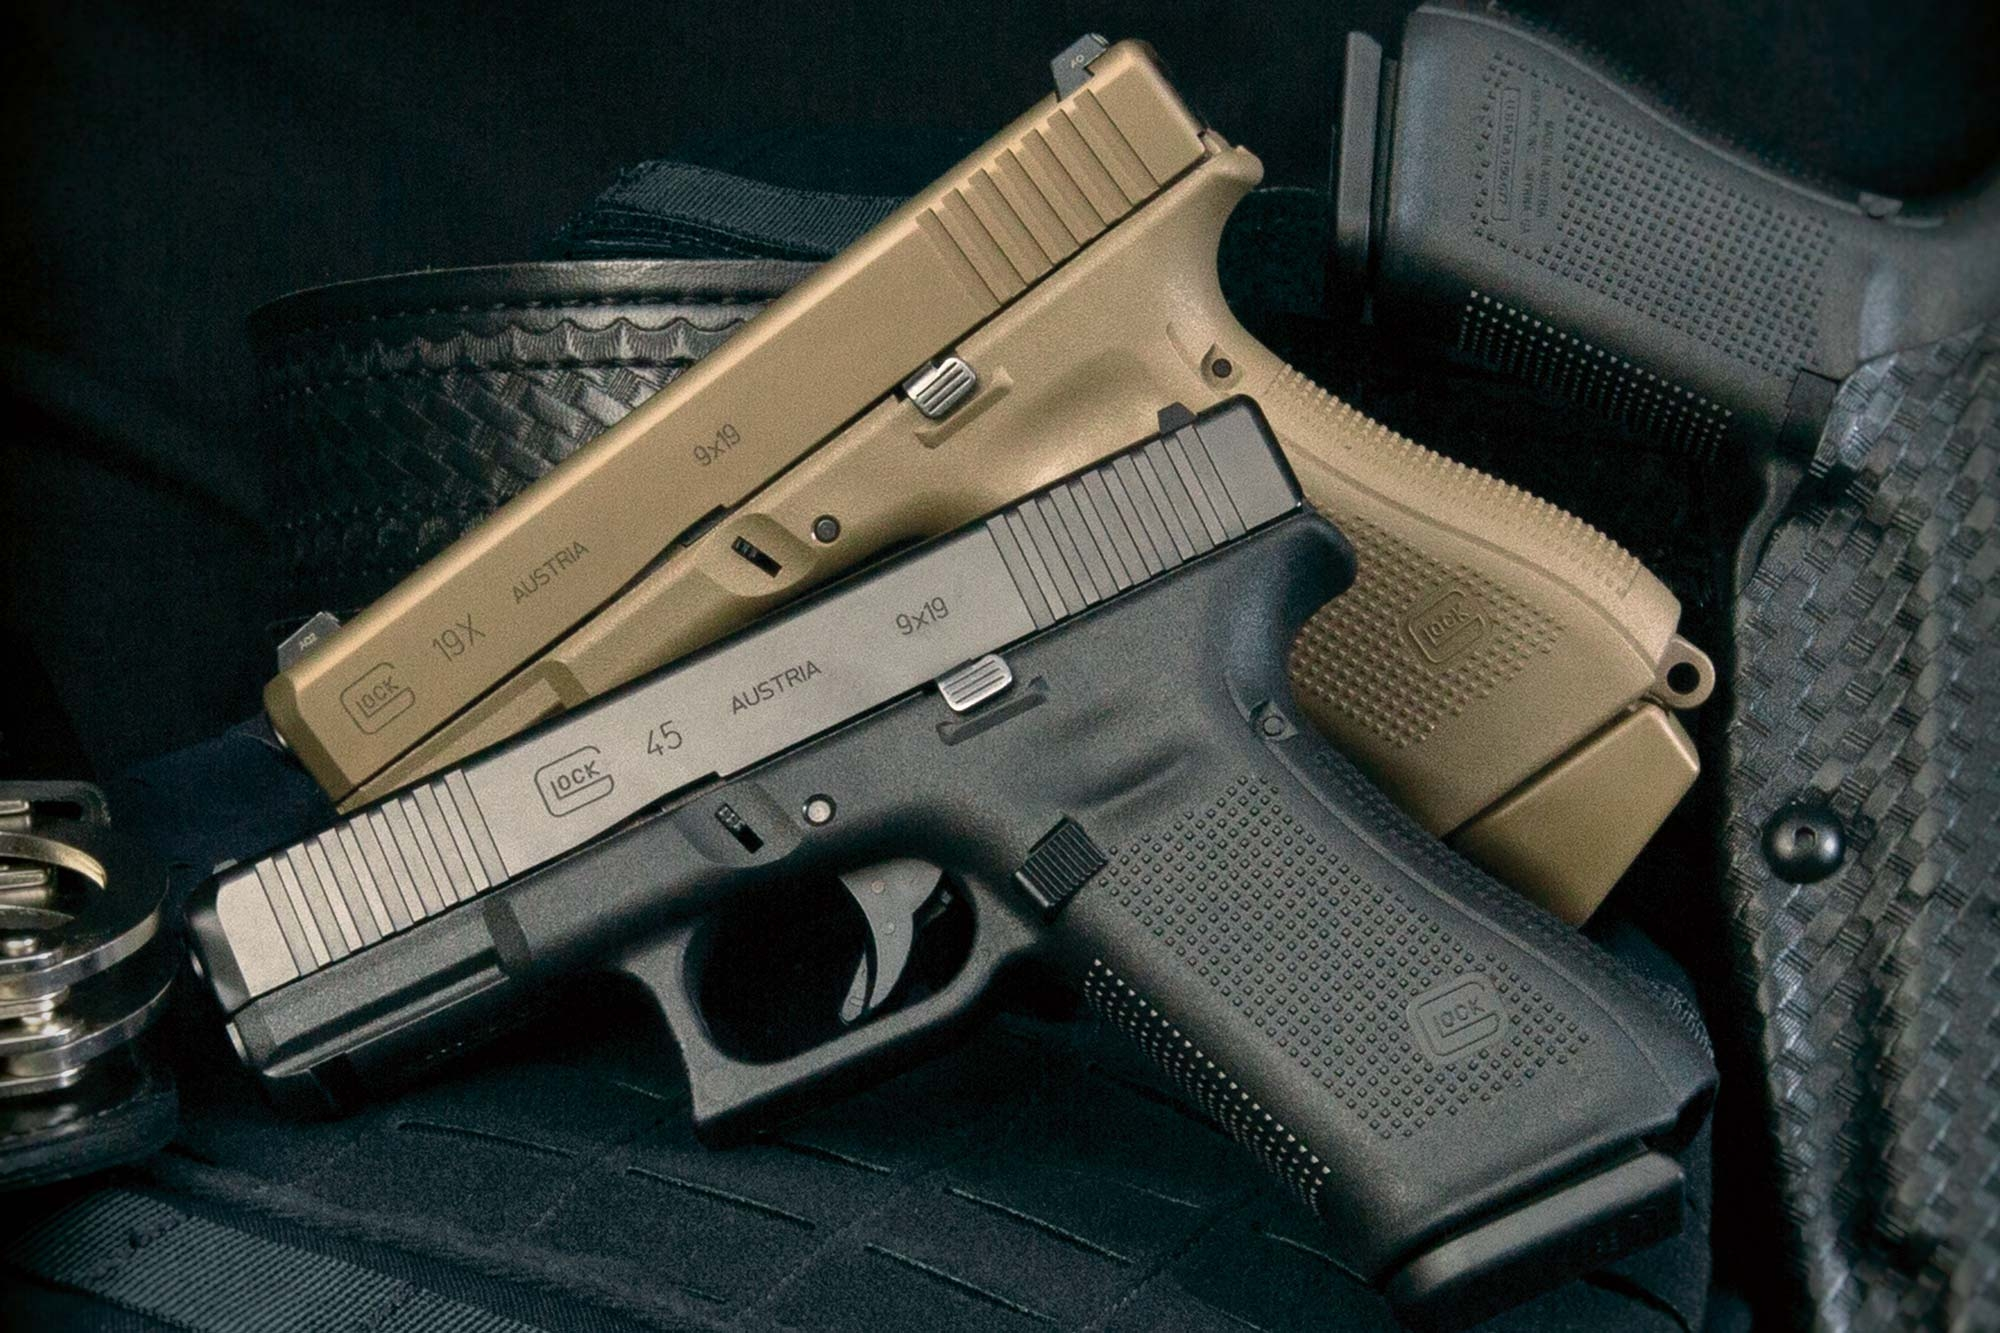 The two crossover guns from GLOCK G45 and G19X in direct comparison